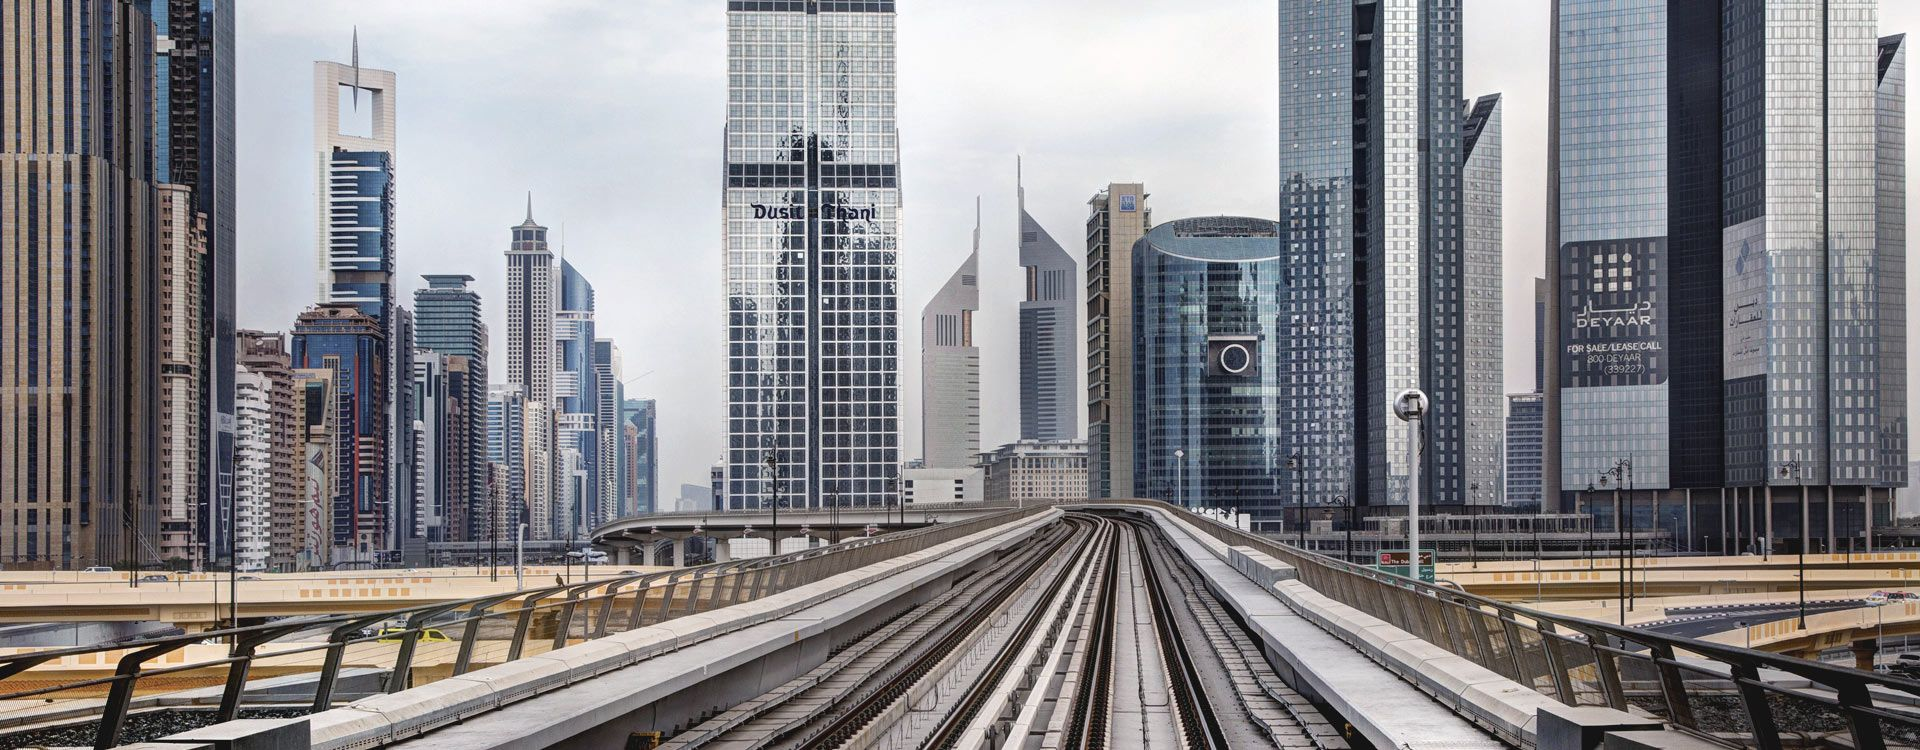 Dubai Integrated Rail Master Plan